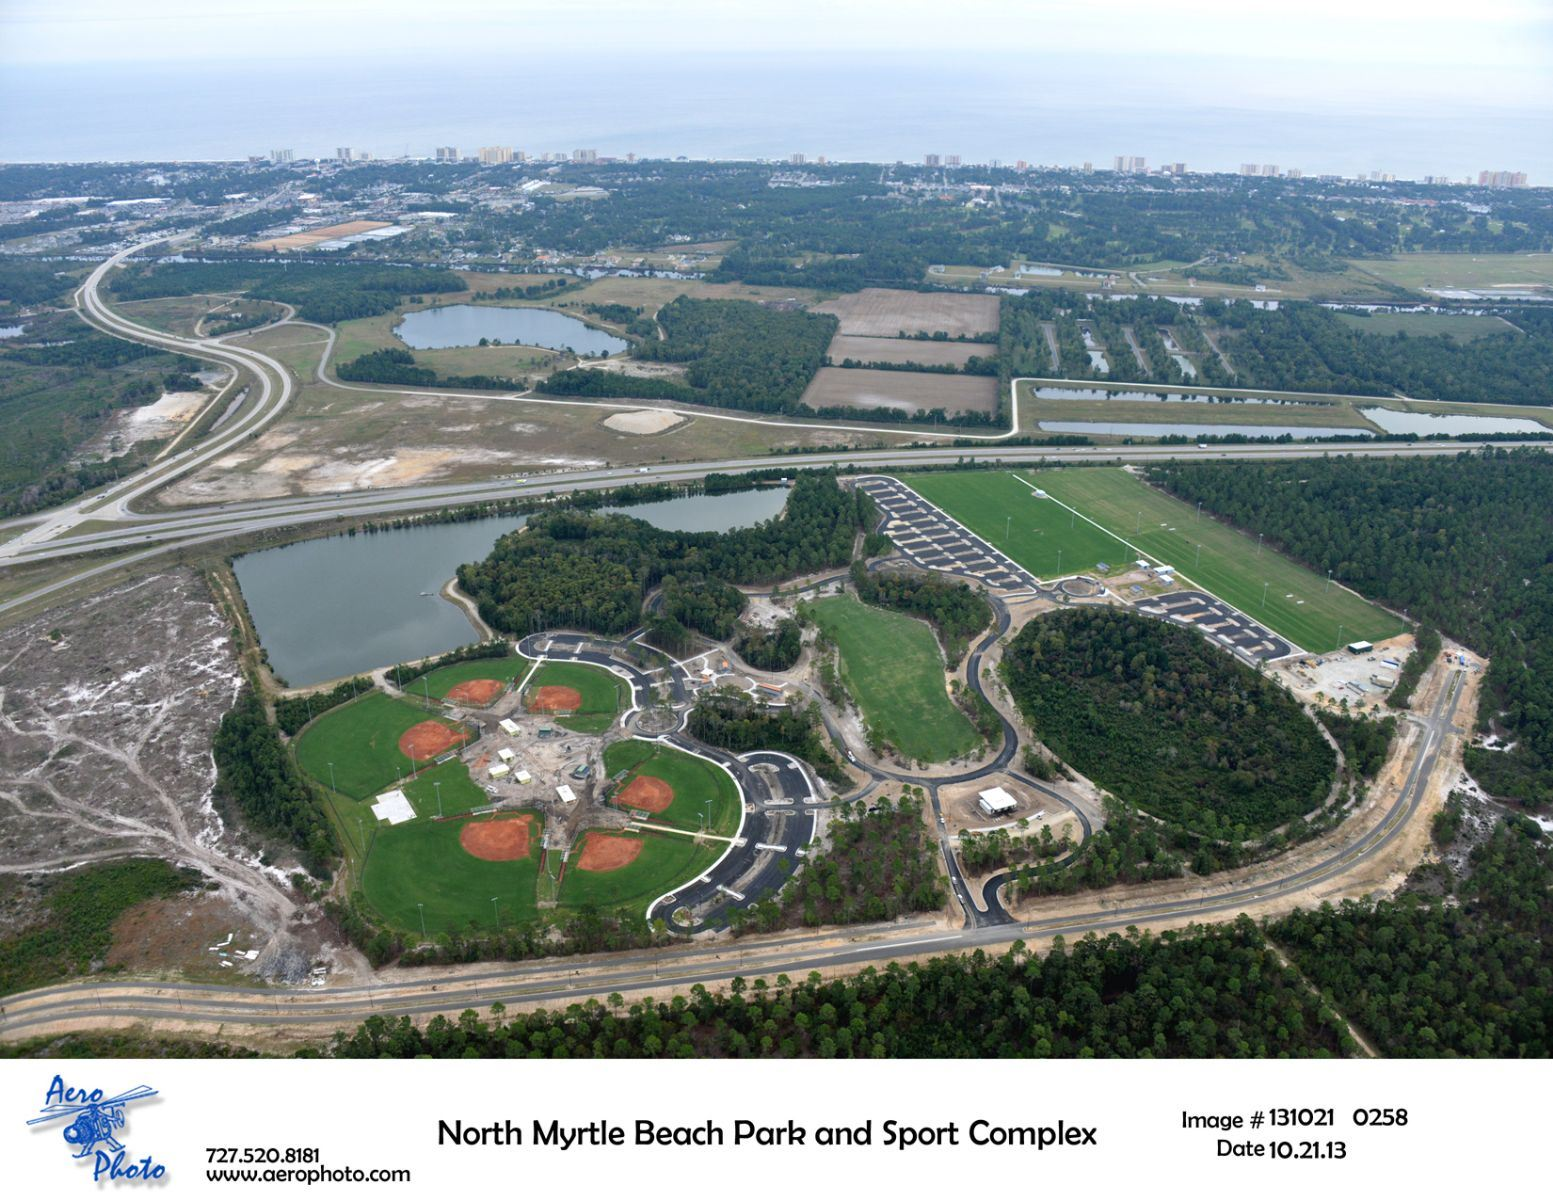 Aerial View of the North Myrtle Beach Park and Sports Complex